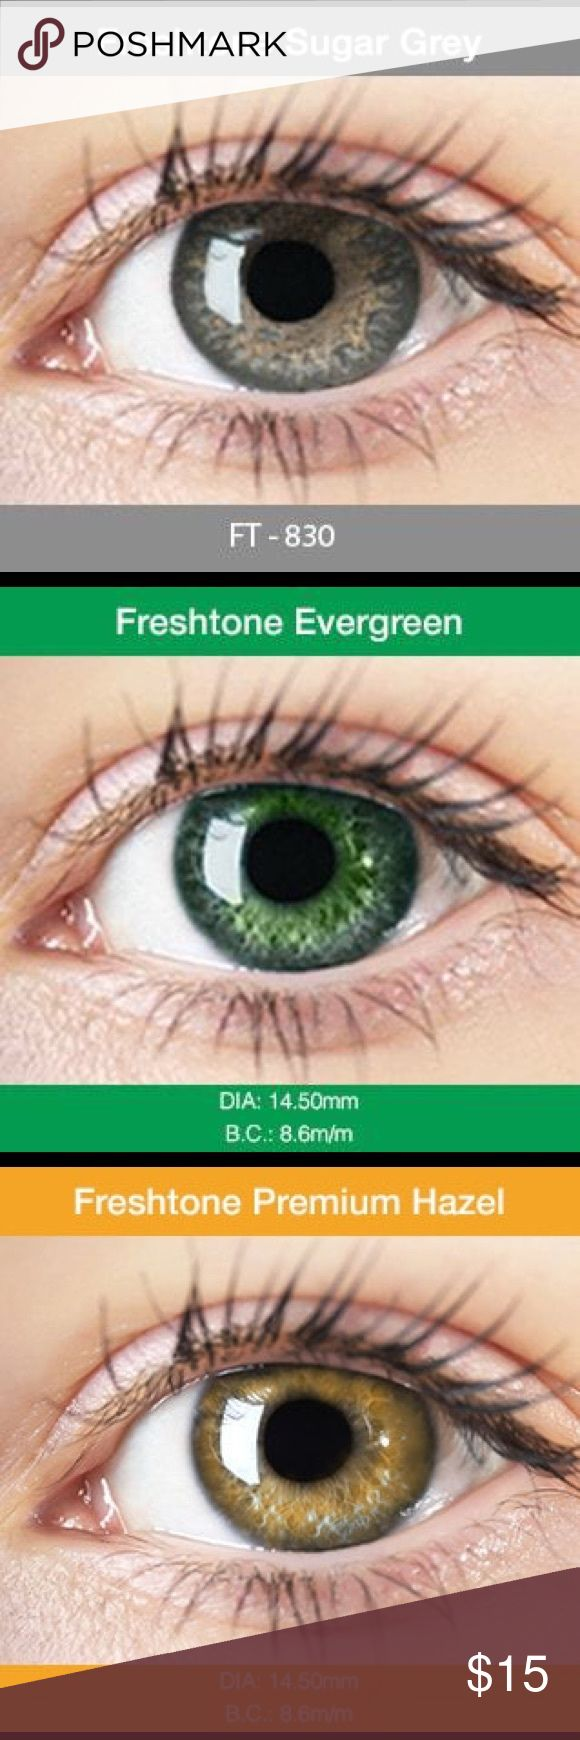 FREE CASE| colored Contact lenses DESCRIPTION: Diameter: 14.5mm  Water Content: 42% water  Base Curve: 8.6mm  Usage: 4-6 months   Comes with a free case! HIGH QUALITY NON PRESCRIPTION FRESHTONE COSMETICS COLOR CONTACTS  Freshtone colored contact lenses are packed to the highest possible standards for health and hygiene. **THESE PRODUCTS ARE ALL NON PRESCRIPTION CONTACT LENSES MEANING YOU CAN WEAR THEM WITHOUT ANY PRESCRIPTIONS**  FREE SHIPPING: SHIPPED IN THE SAME DAY   $13 FOR ONE PAIR OF…